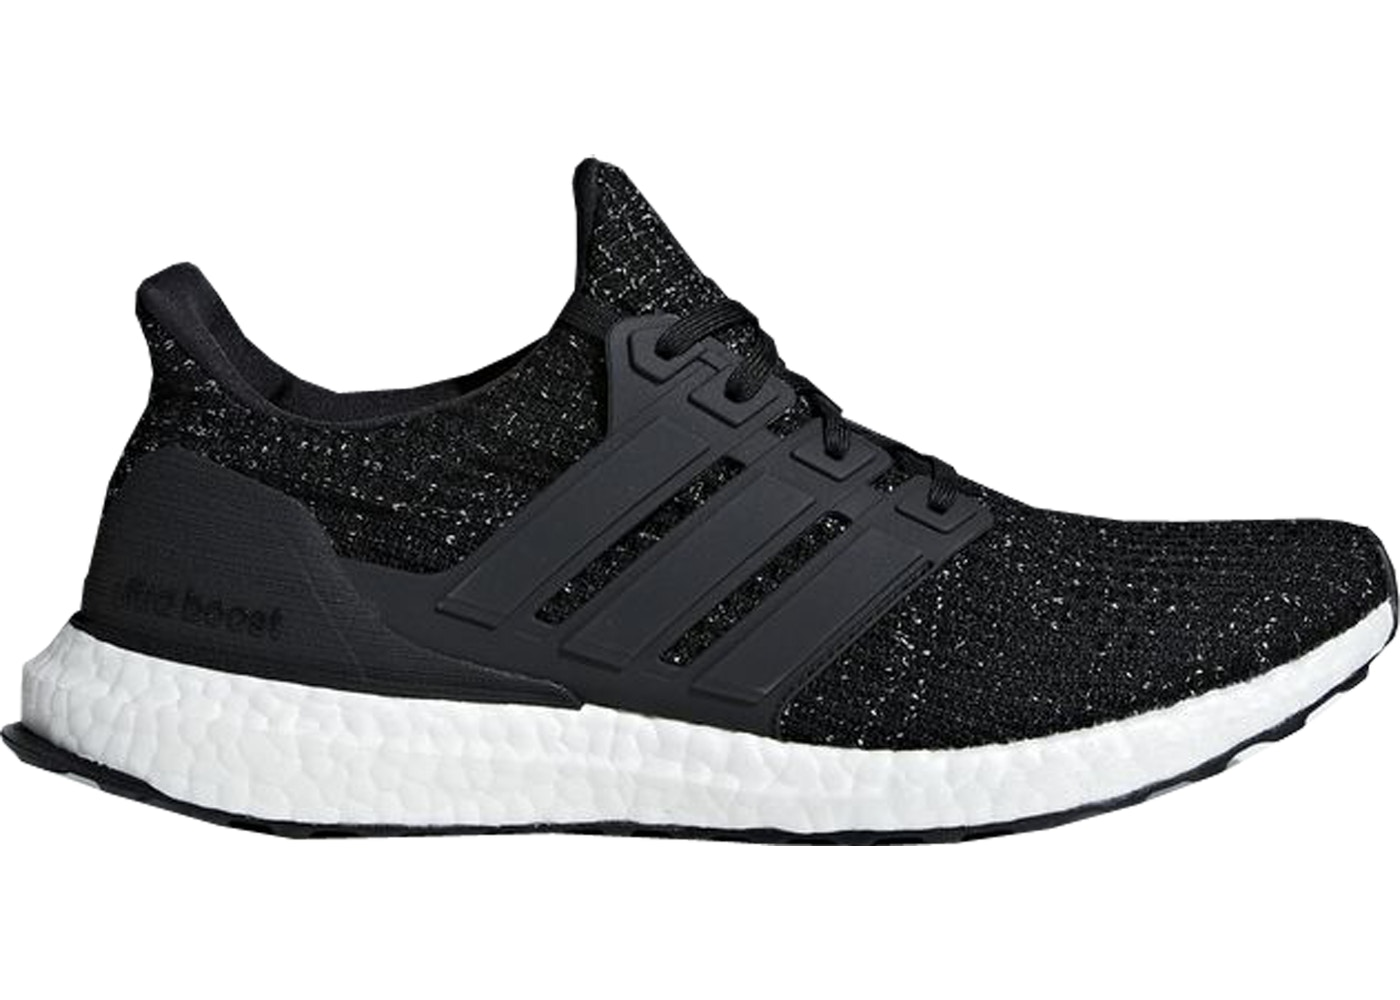 5b5f7c0a6 Buy adidas Ultra Boost Shoes   Deadstock Sneakers